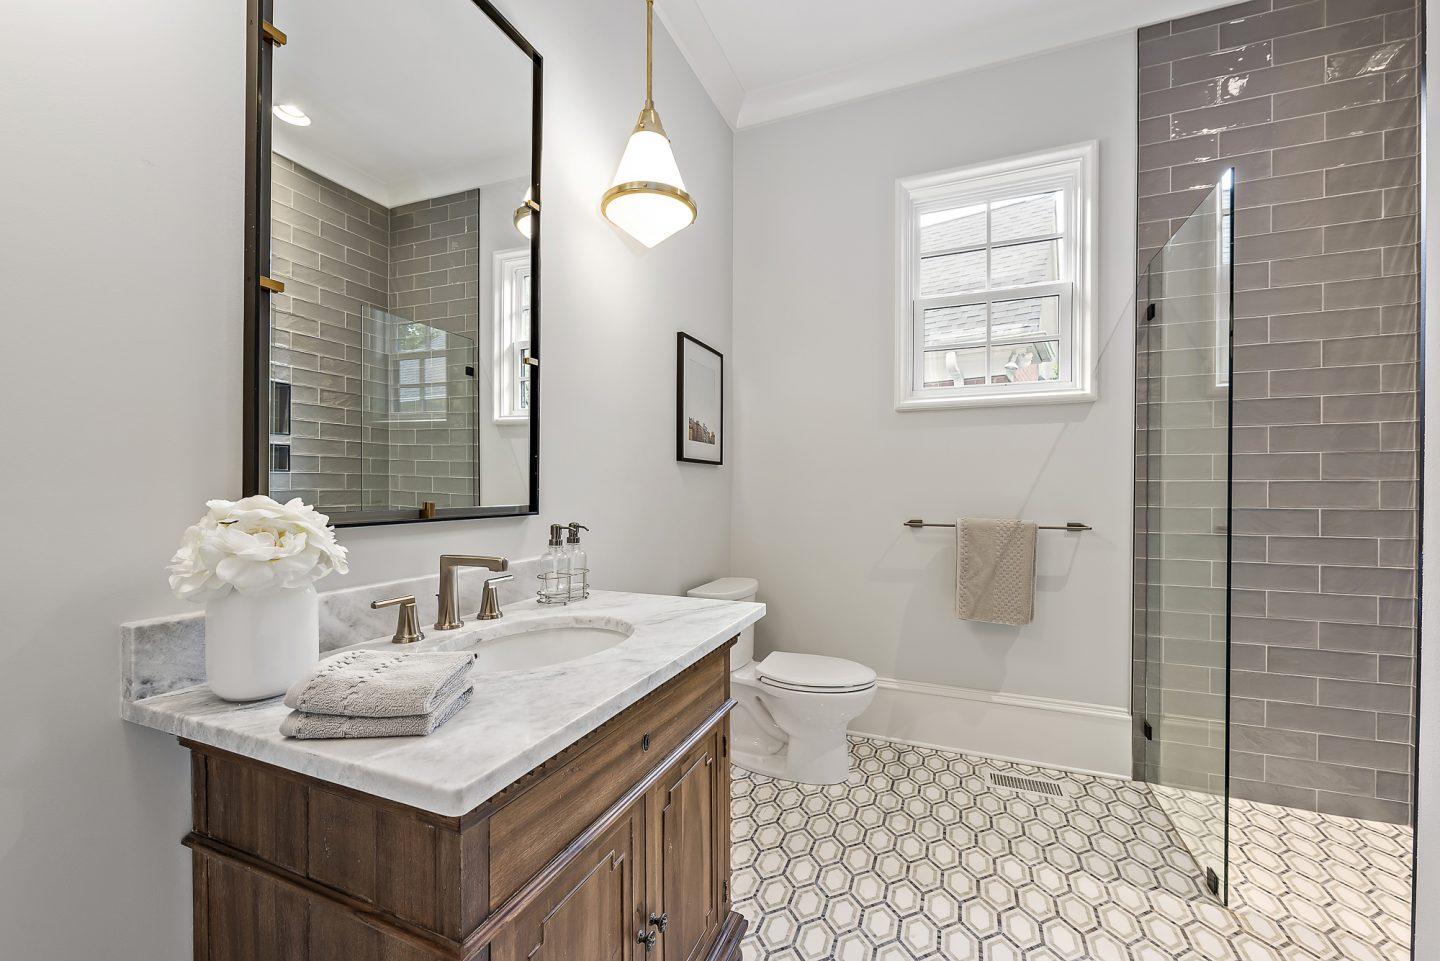 luxury modern farmhouse bathroom - Pike Properties, Charlotte, NC